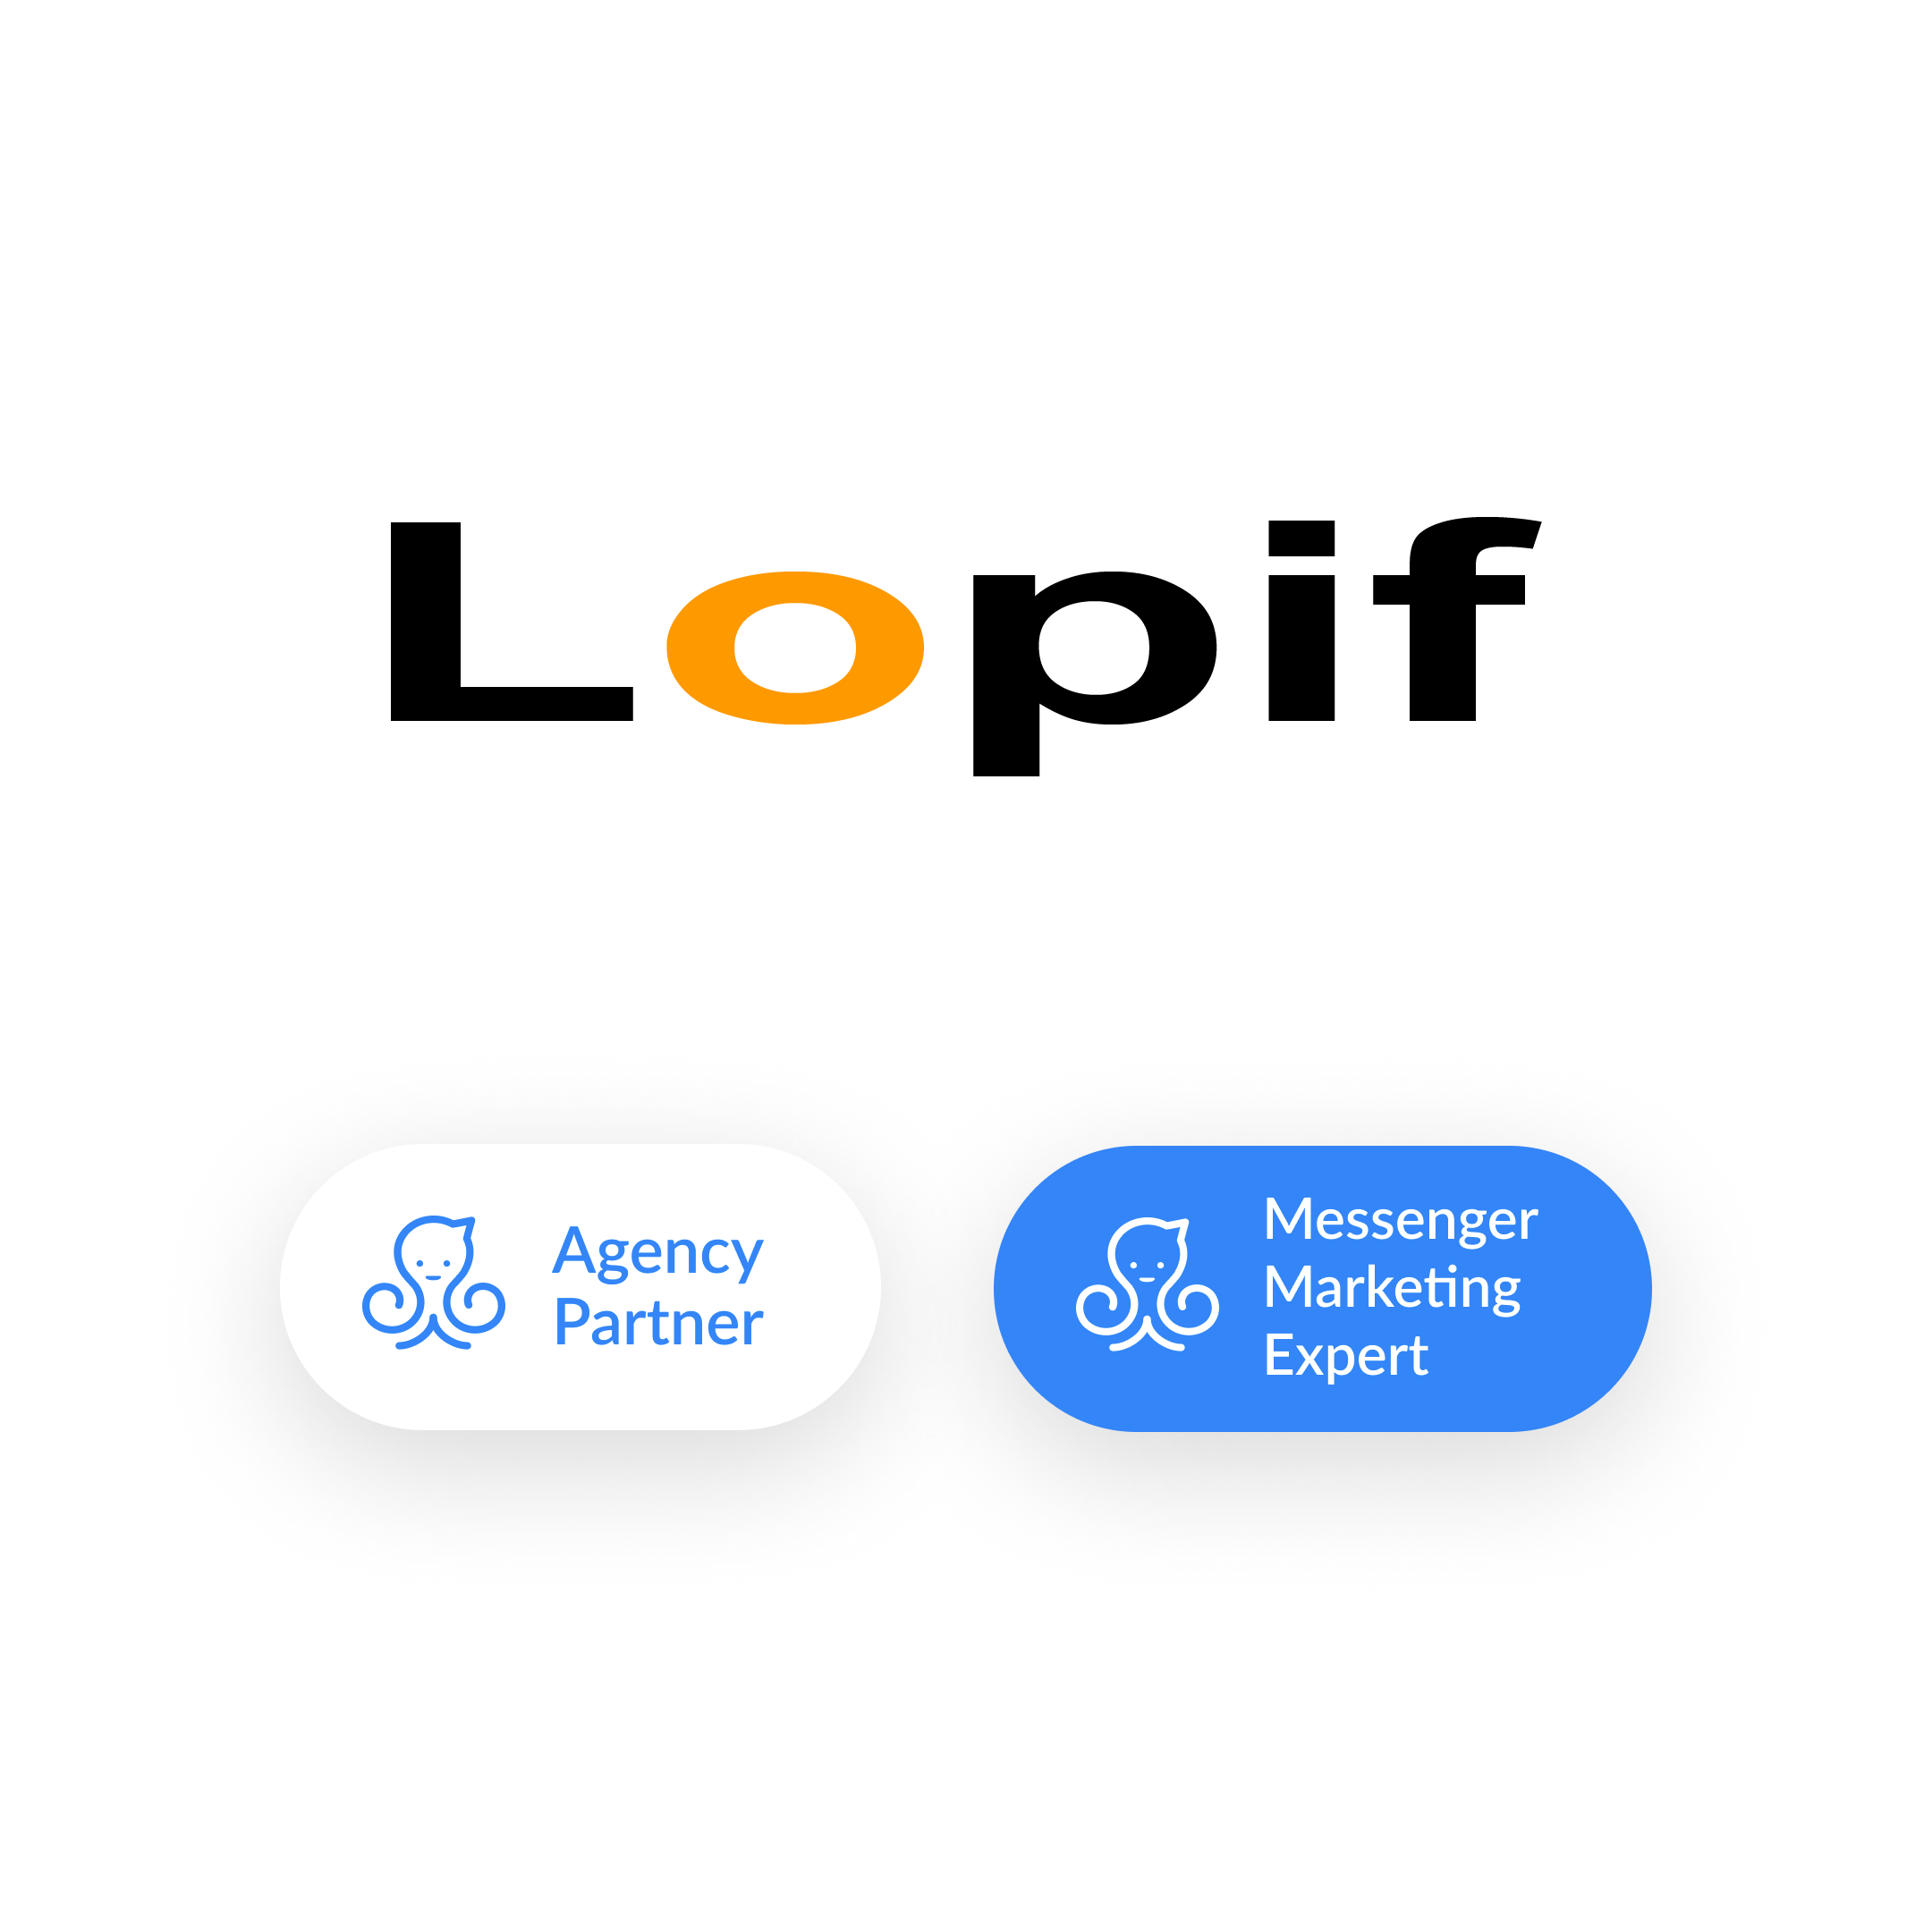 Lopif ManyChat Partner and Messenger Marketing Expert